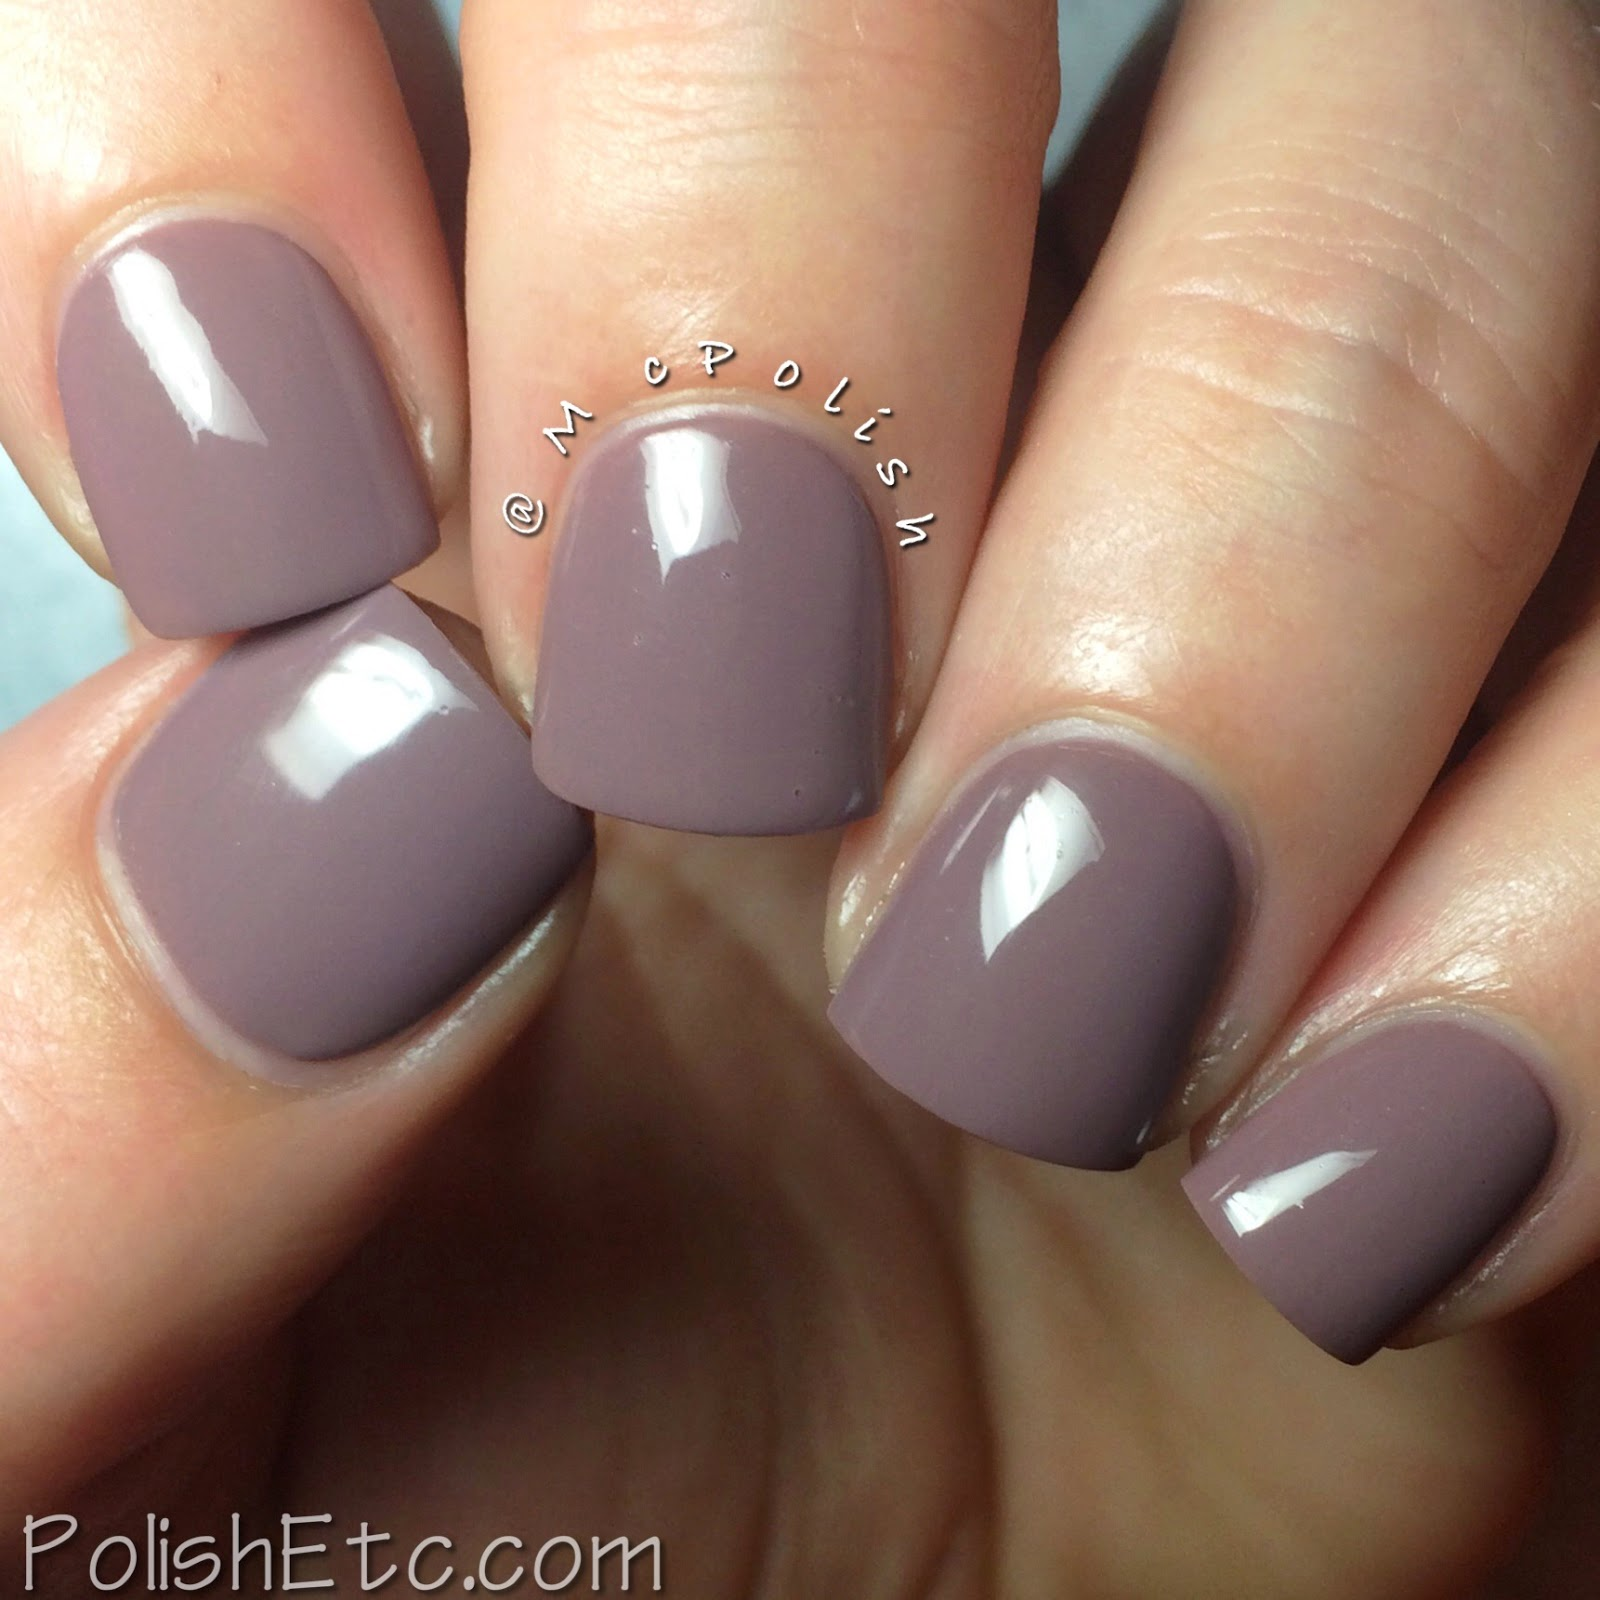 Tillie Polish Glamorous Collection - McPolish - Posh